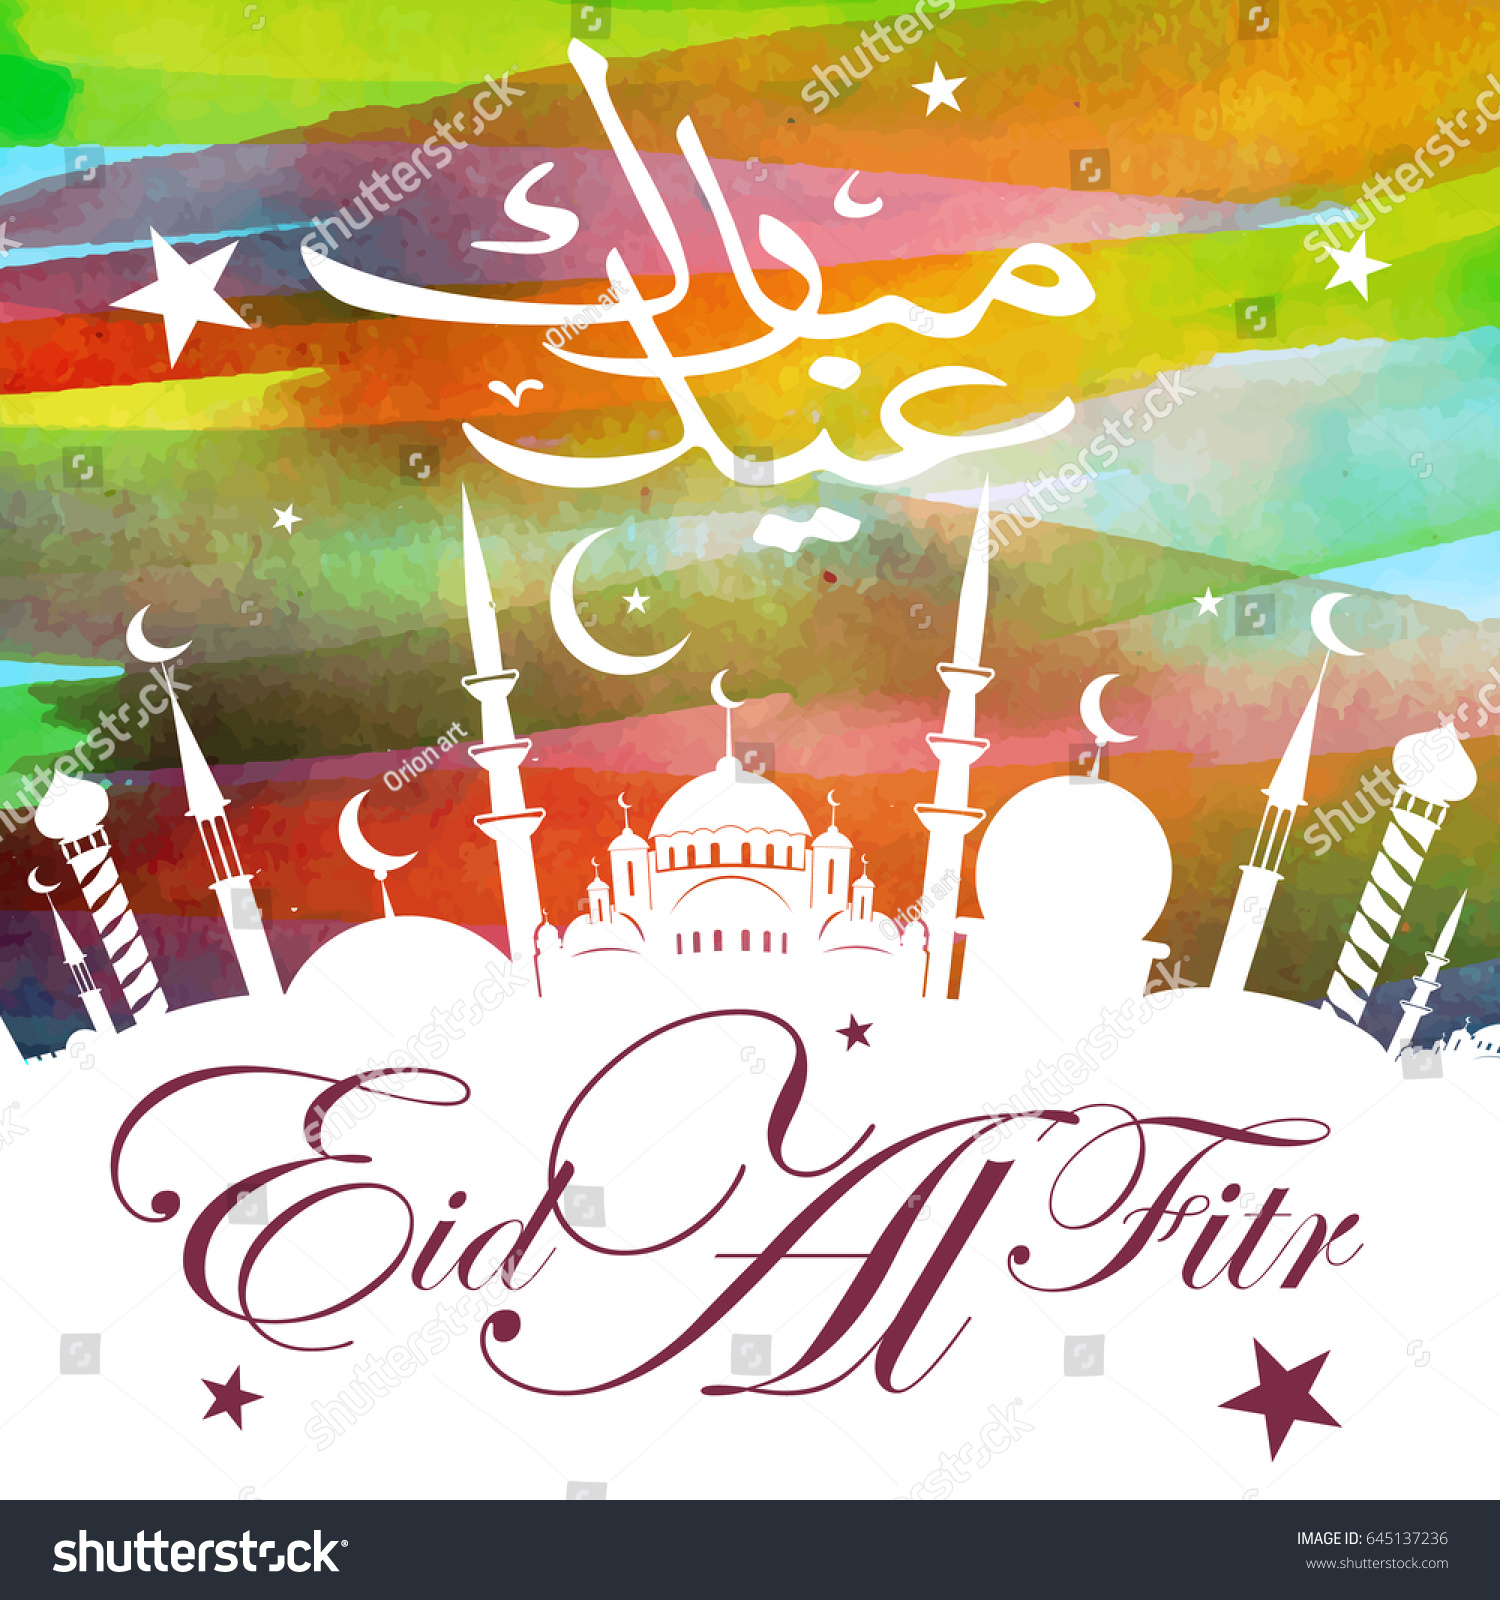 Calligraphy arabic text eid al fitr stock illustration 645137236 calligraphy of arabic text eid al fitr feast of breaking the fast kristyandbryce Choice Image